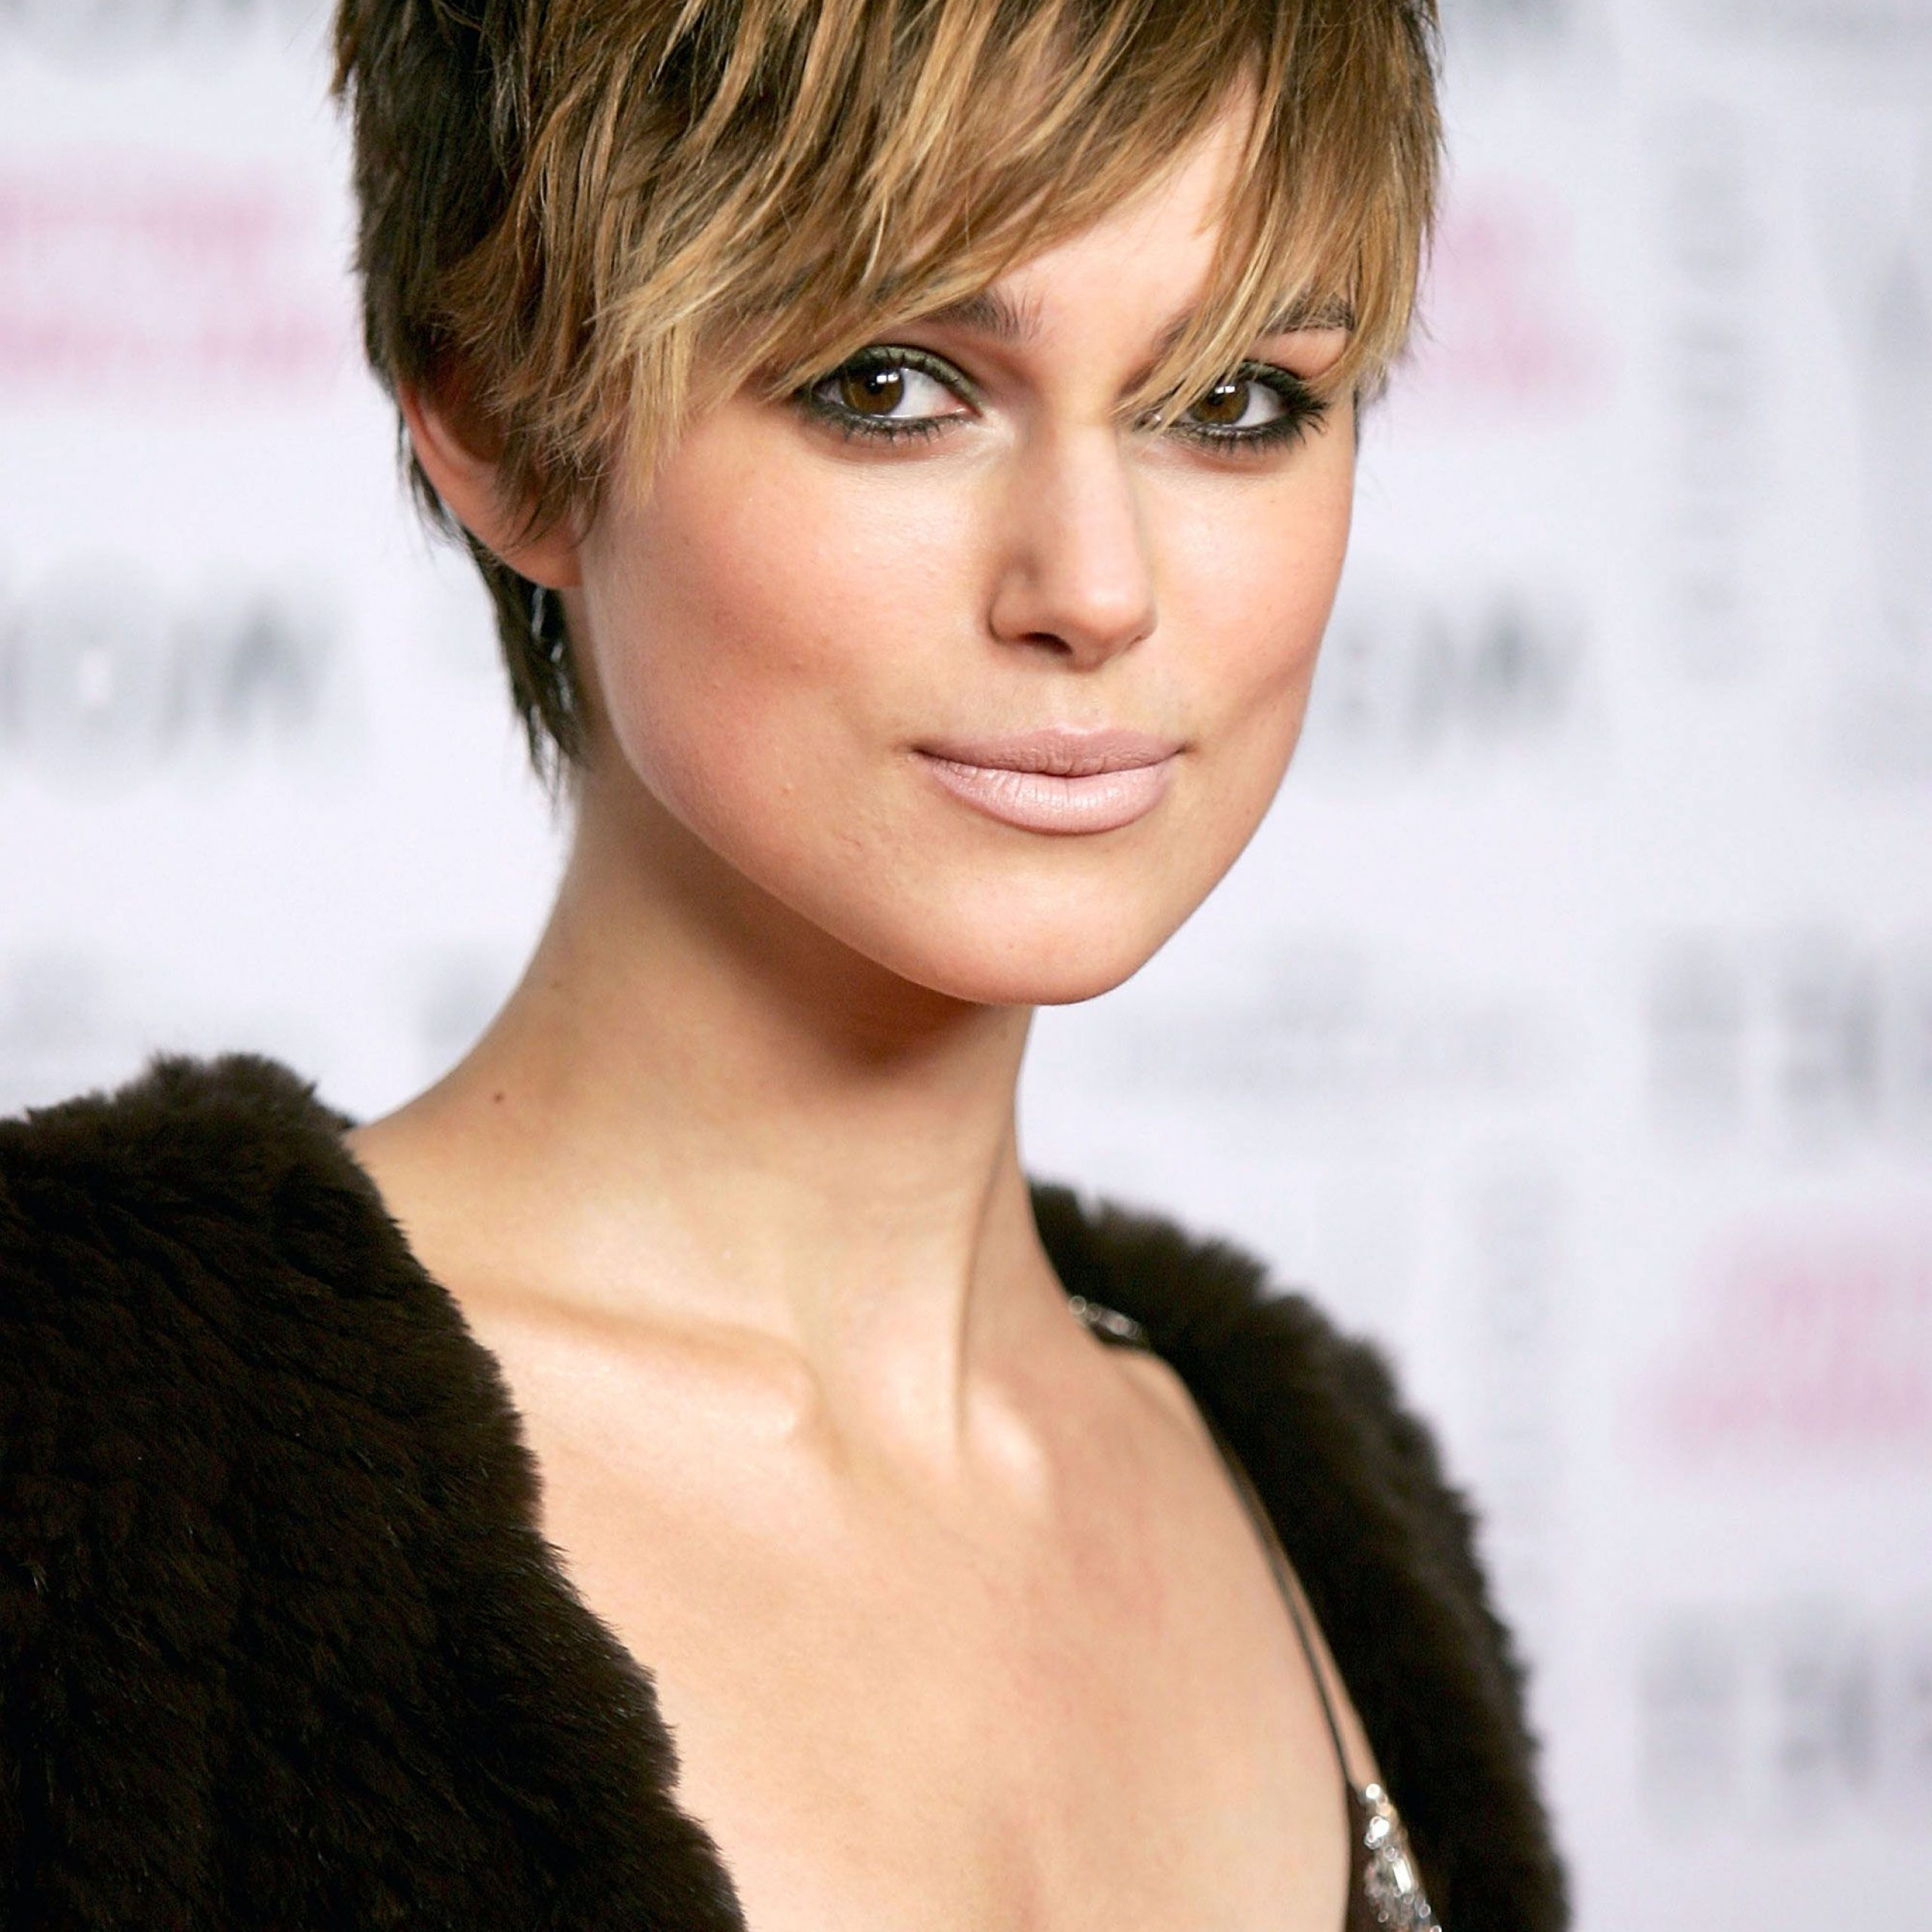 60+ Pixie Cuts We Love For 2020 – Short Pixie Hairstyles For Latest Sassy Short Pixie Haircuts With Bangs (View 15 of 20)